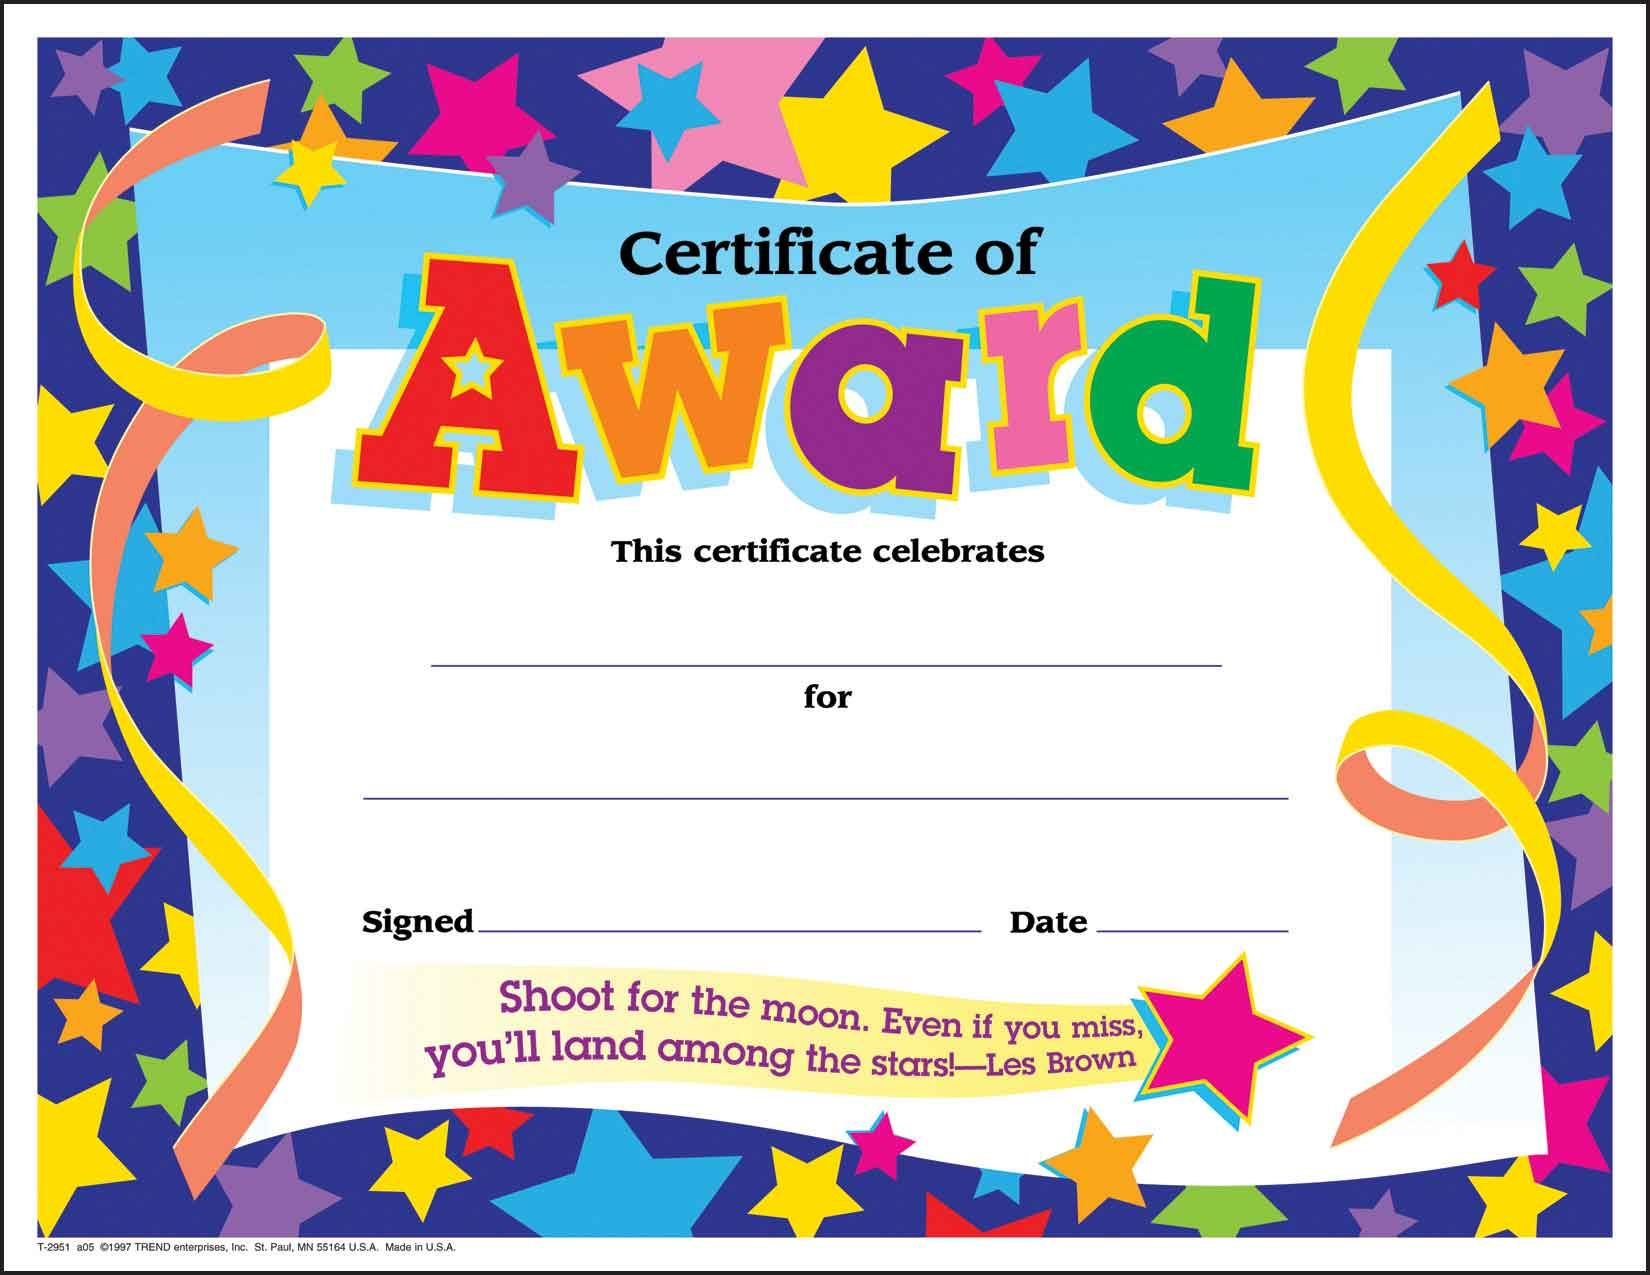 Certificate Template For Kids Free Certificate Templates - Good Behaviour Certificates Free Printable